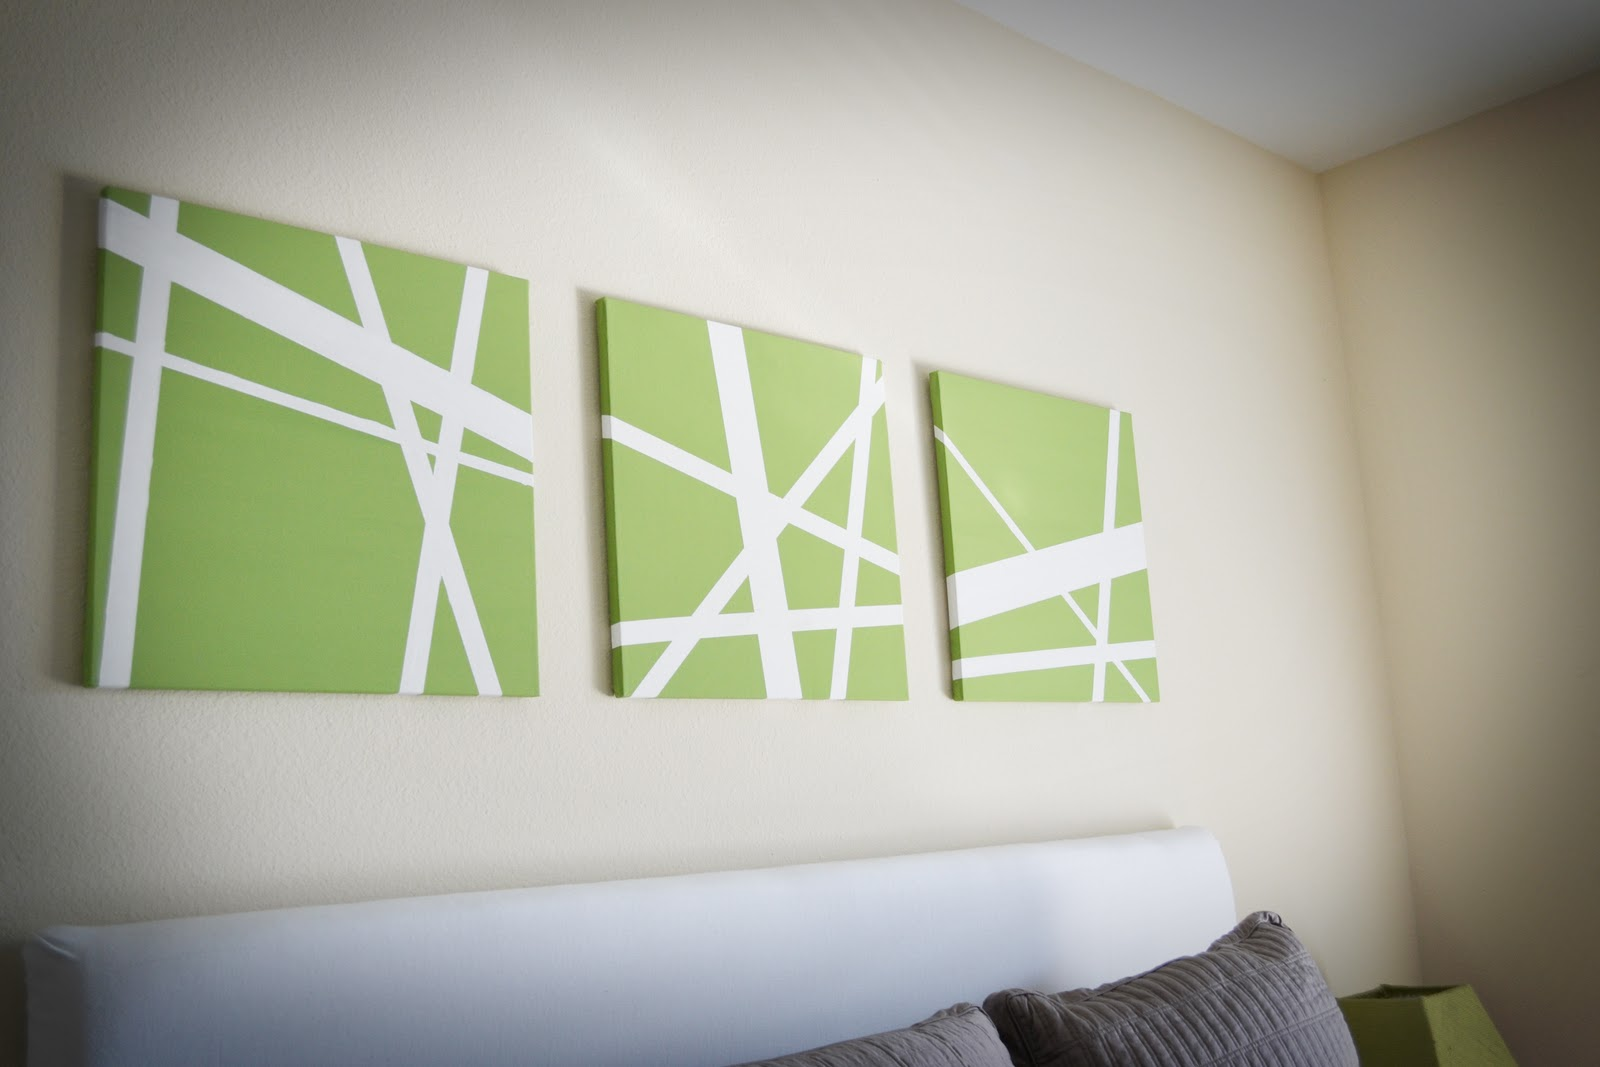 Diy Wall Art Canvas Tape : Davis day by super easy canvas art